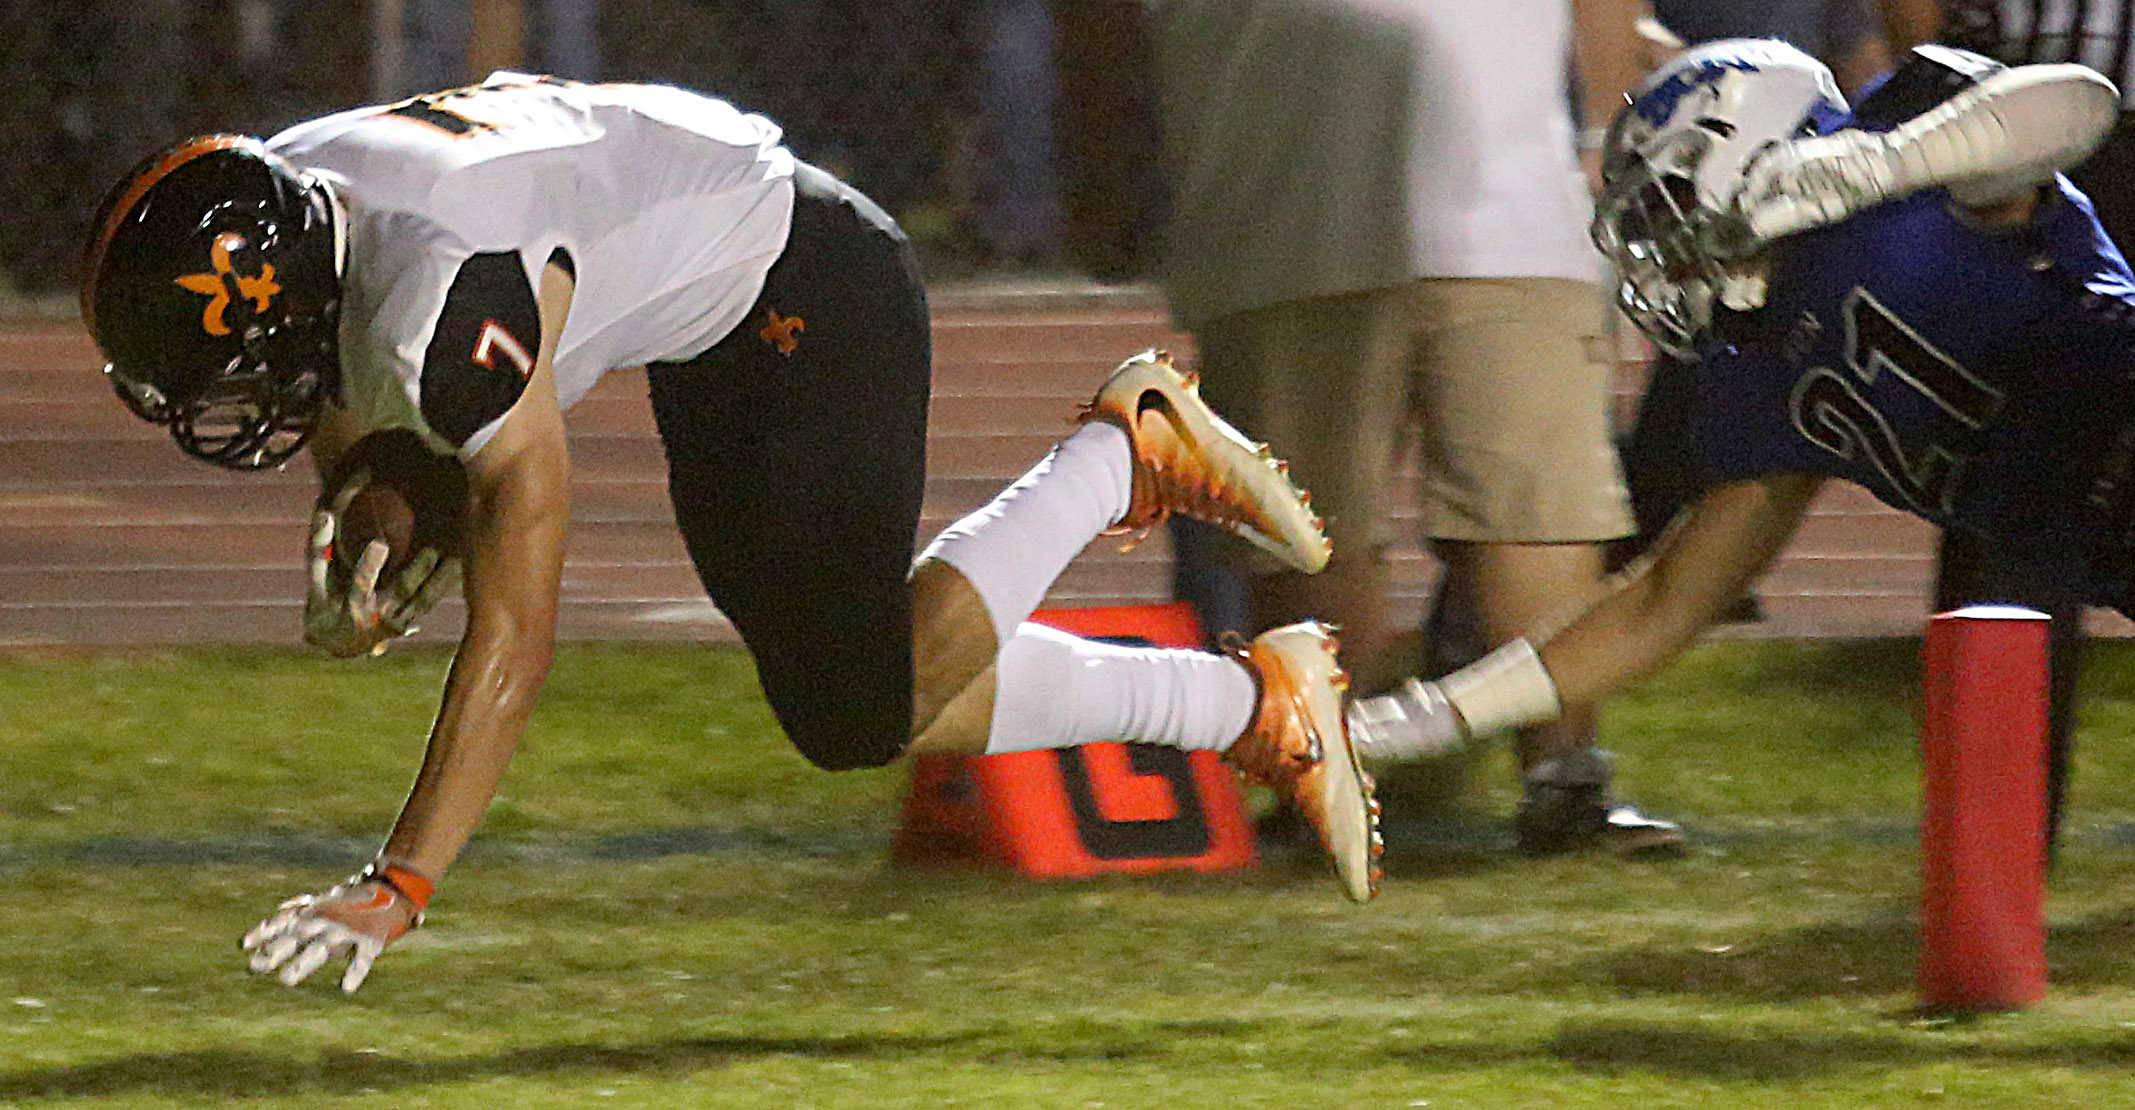 St. Charles East's Nicholas Garlisch tumbles into the end zone for a touchdown against St. Charles North Friday.